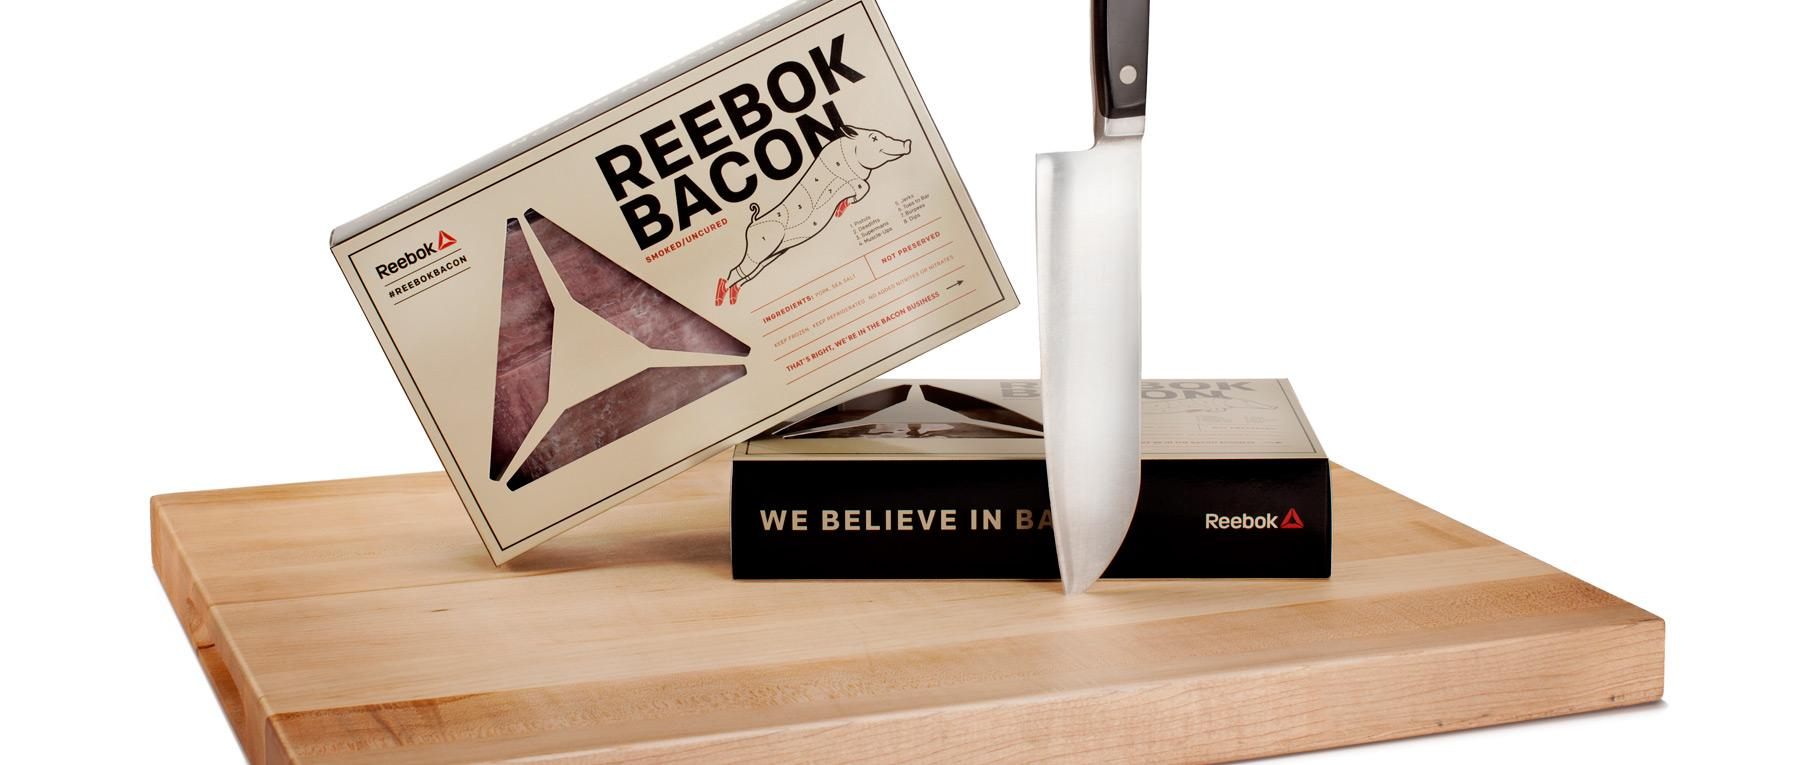 Reebok Is Now in the Bacon Business http://t.co/k9bGosB3P5 http://t.co/bPBsFFcs9C